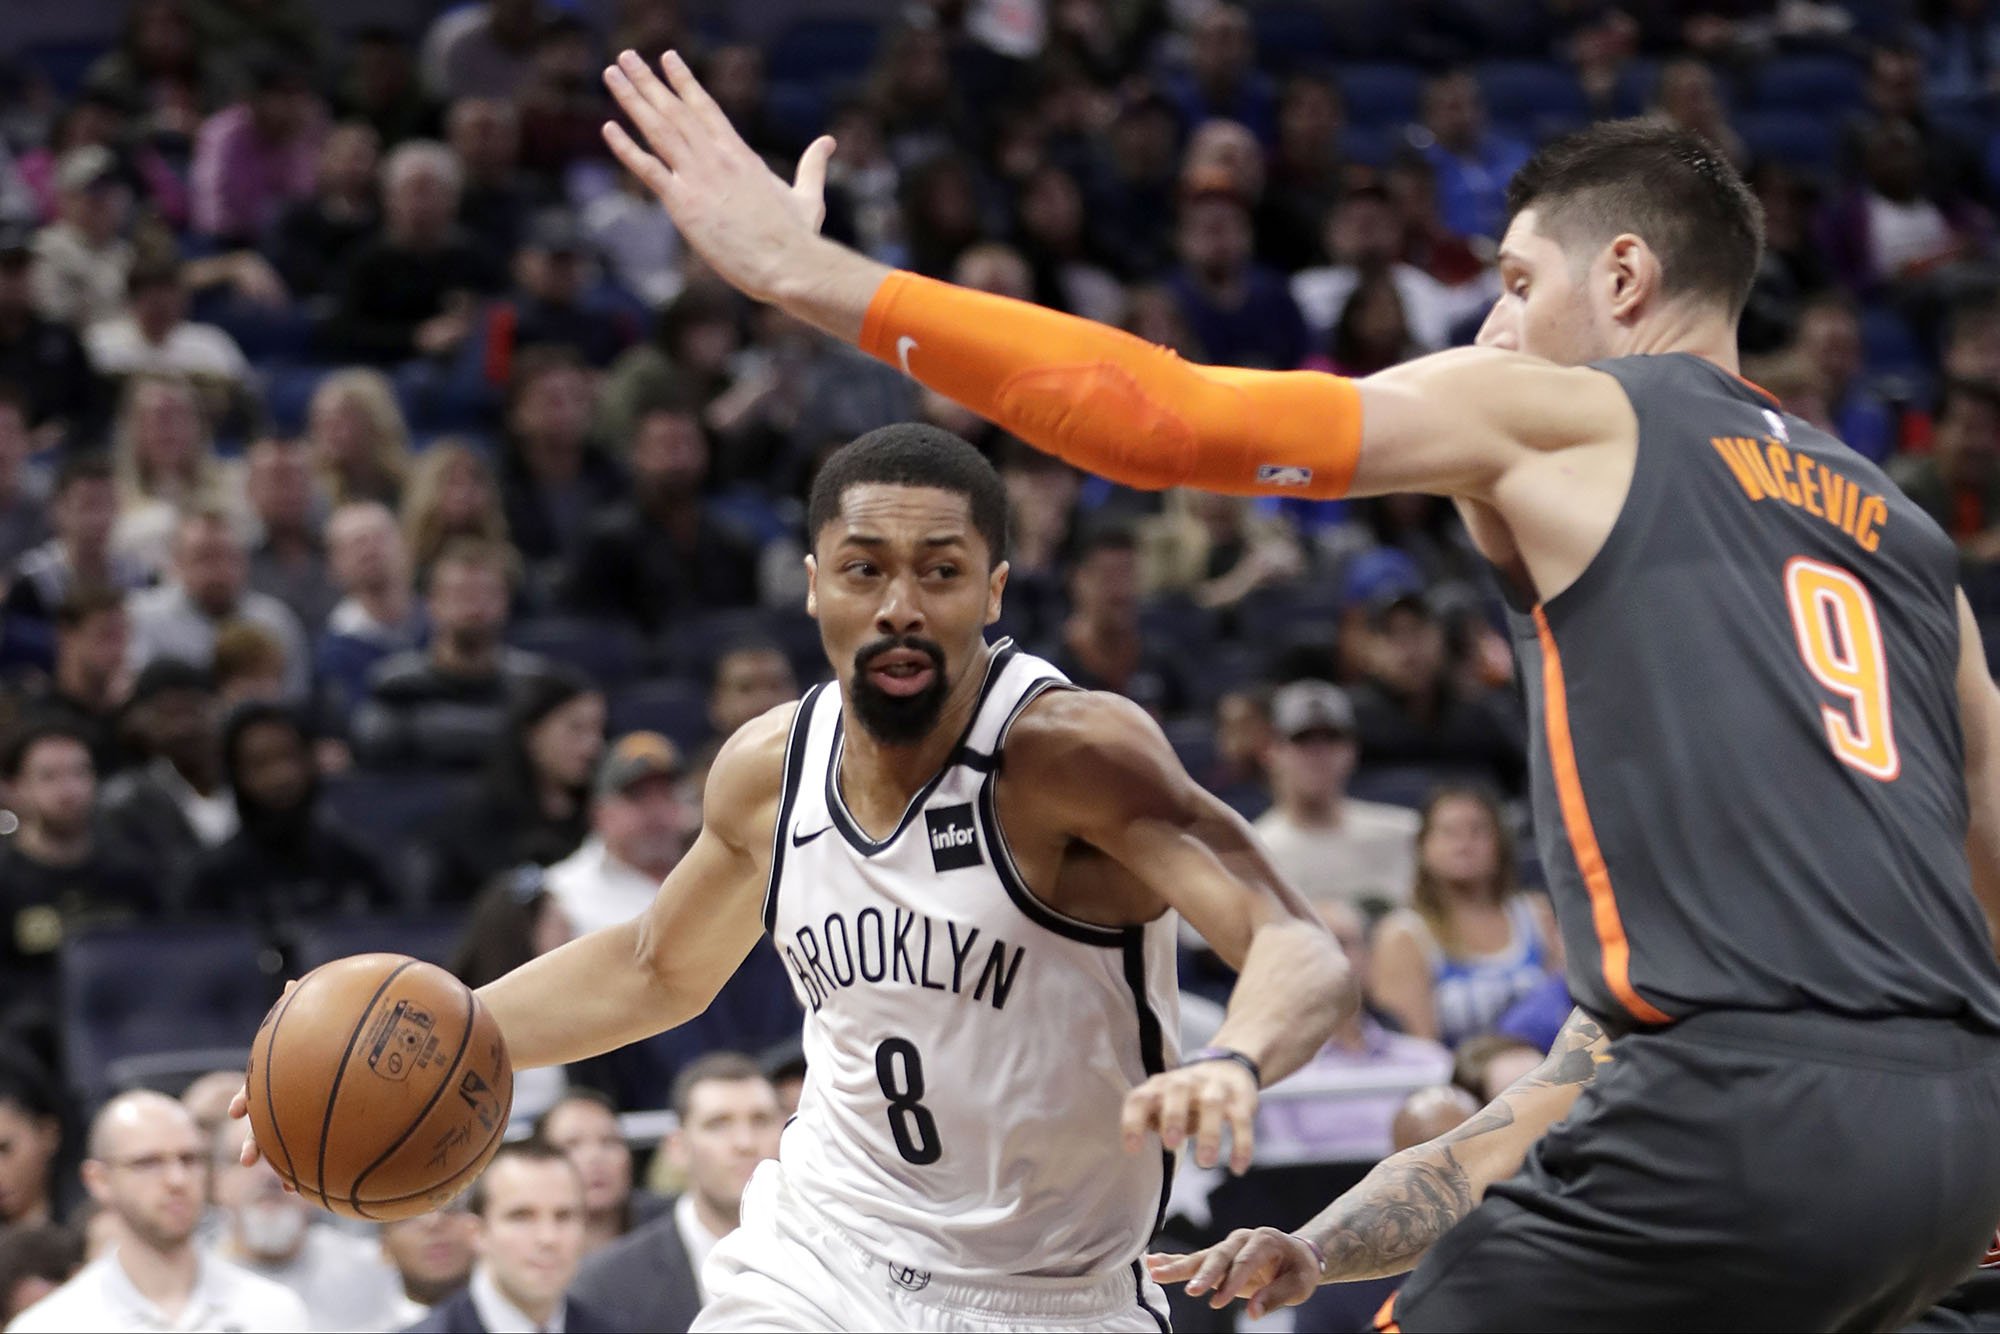 Brooklyn Nets guard Spencer Dinwiddie dribbling past a defender.